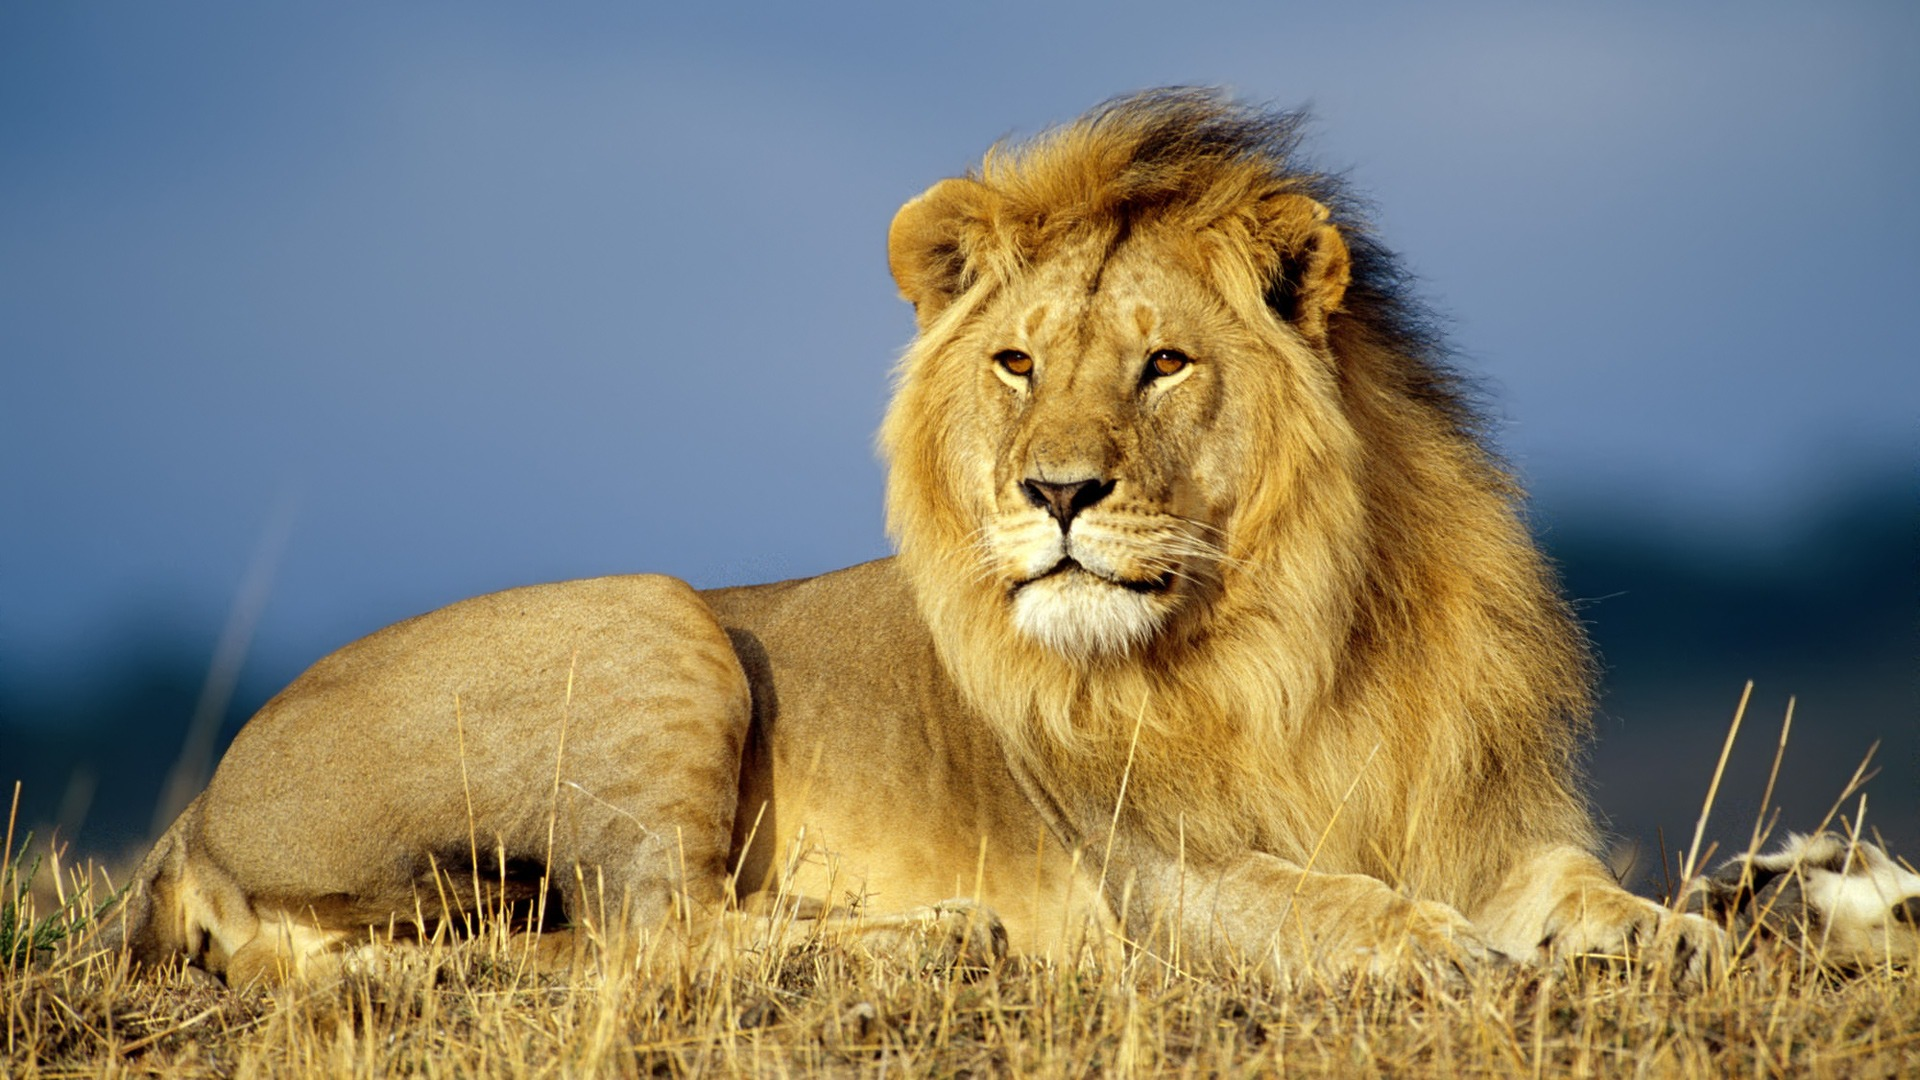 Pictures Of Animals Brave Lion 365.59 Kb